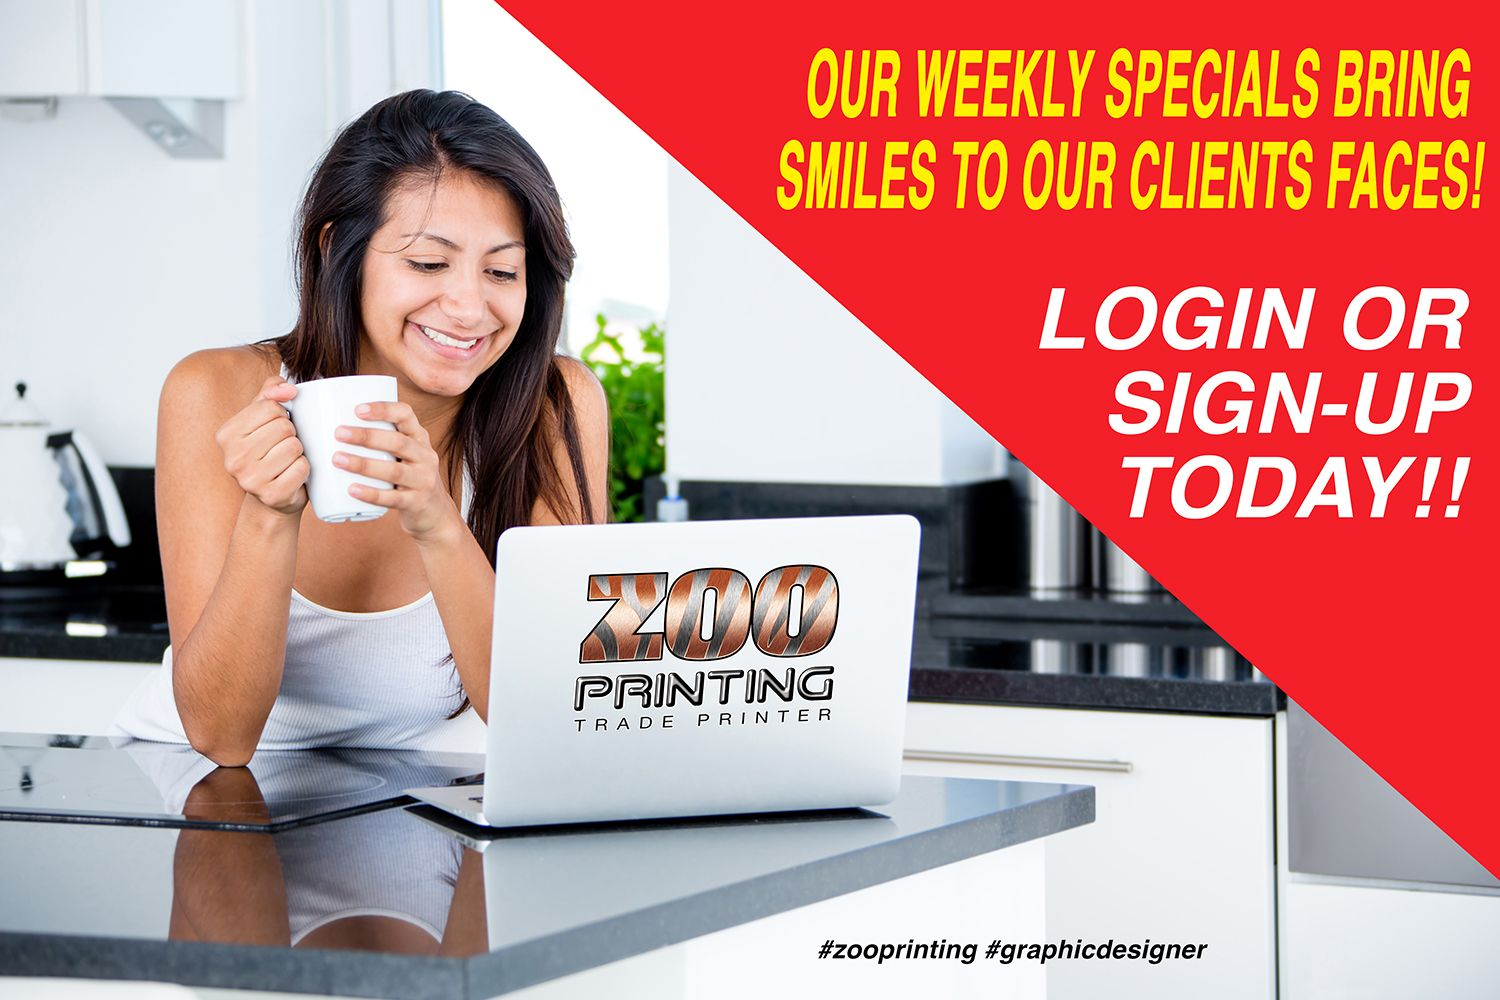 Zoo printing wholesale printing sign up free today http